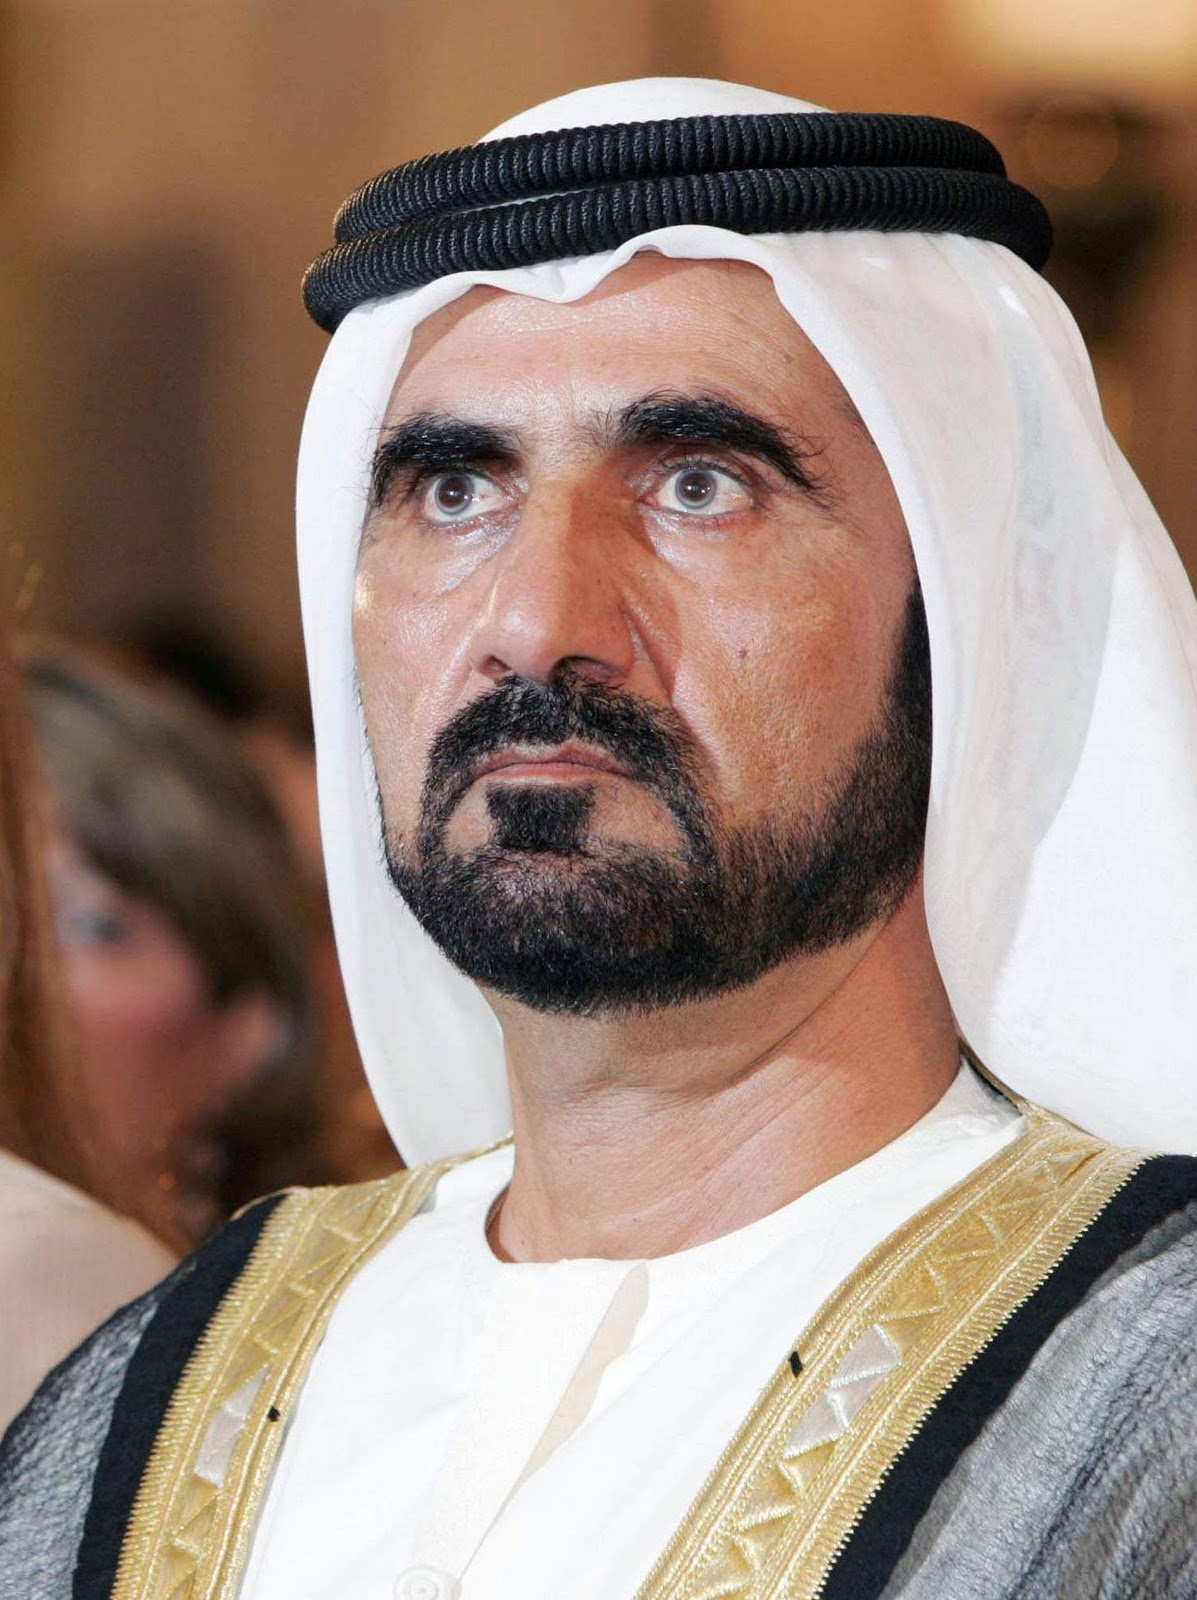 sheikh mohammed Biography on january 4th, 2006, his highness sheikh mohammed bin rashid al maktoum became the ruler of dubai following the death of sheikh maktoum bin rashid al maktoum.